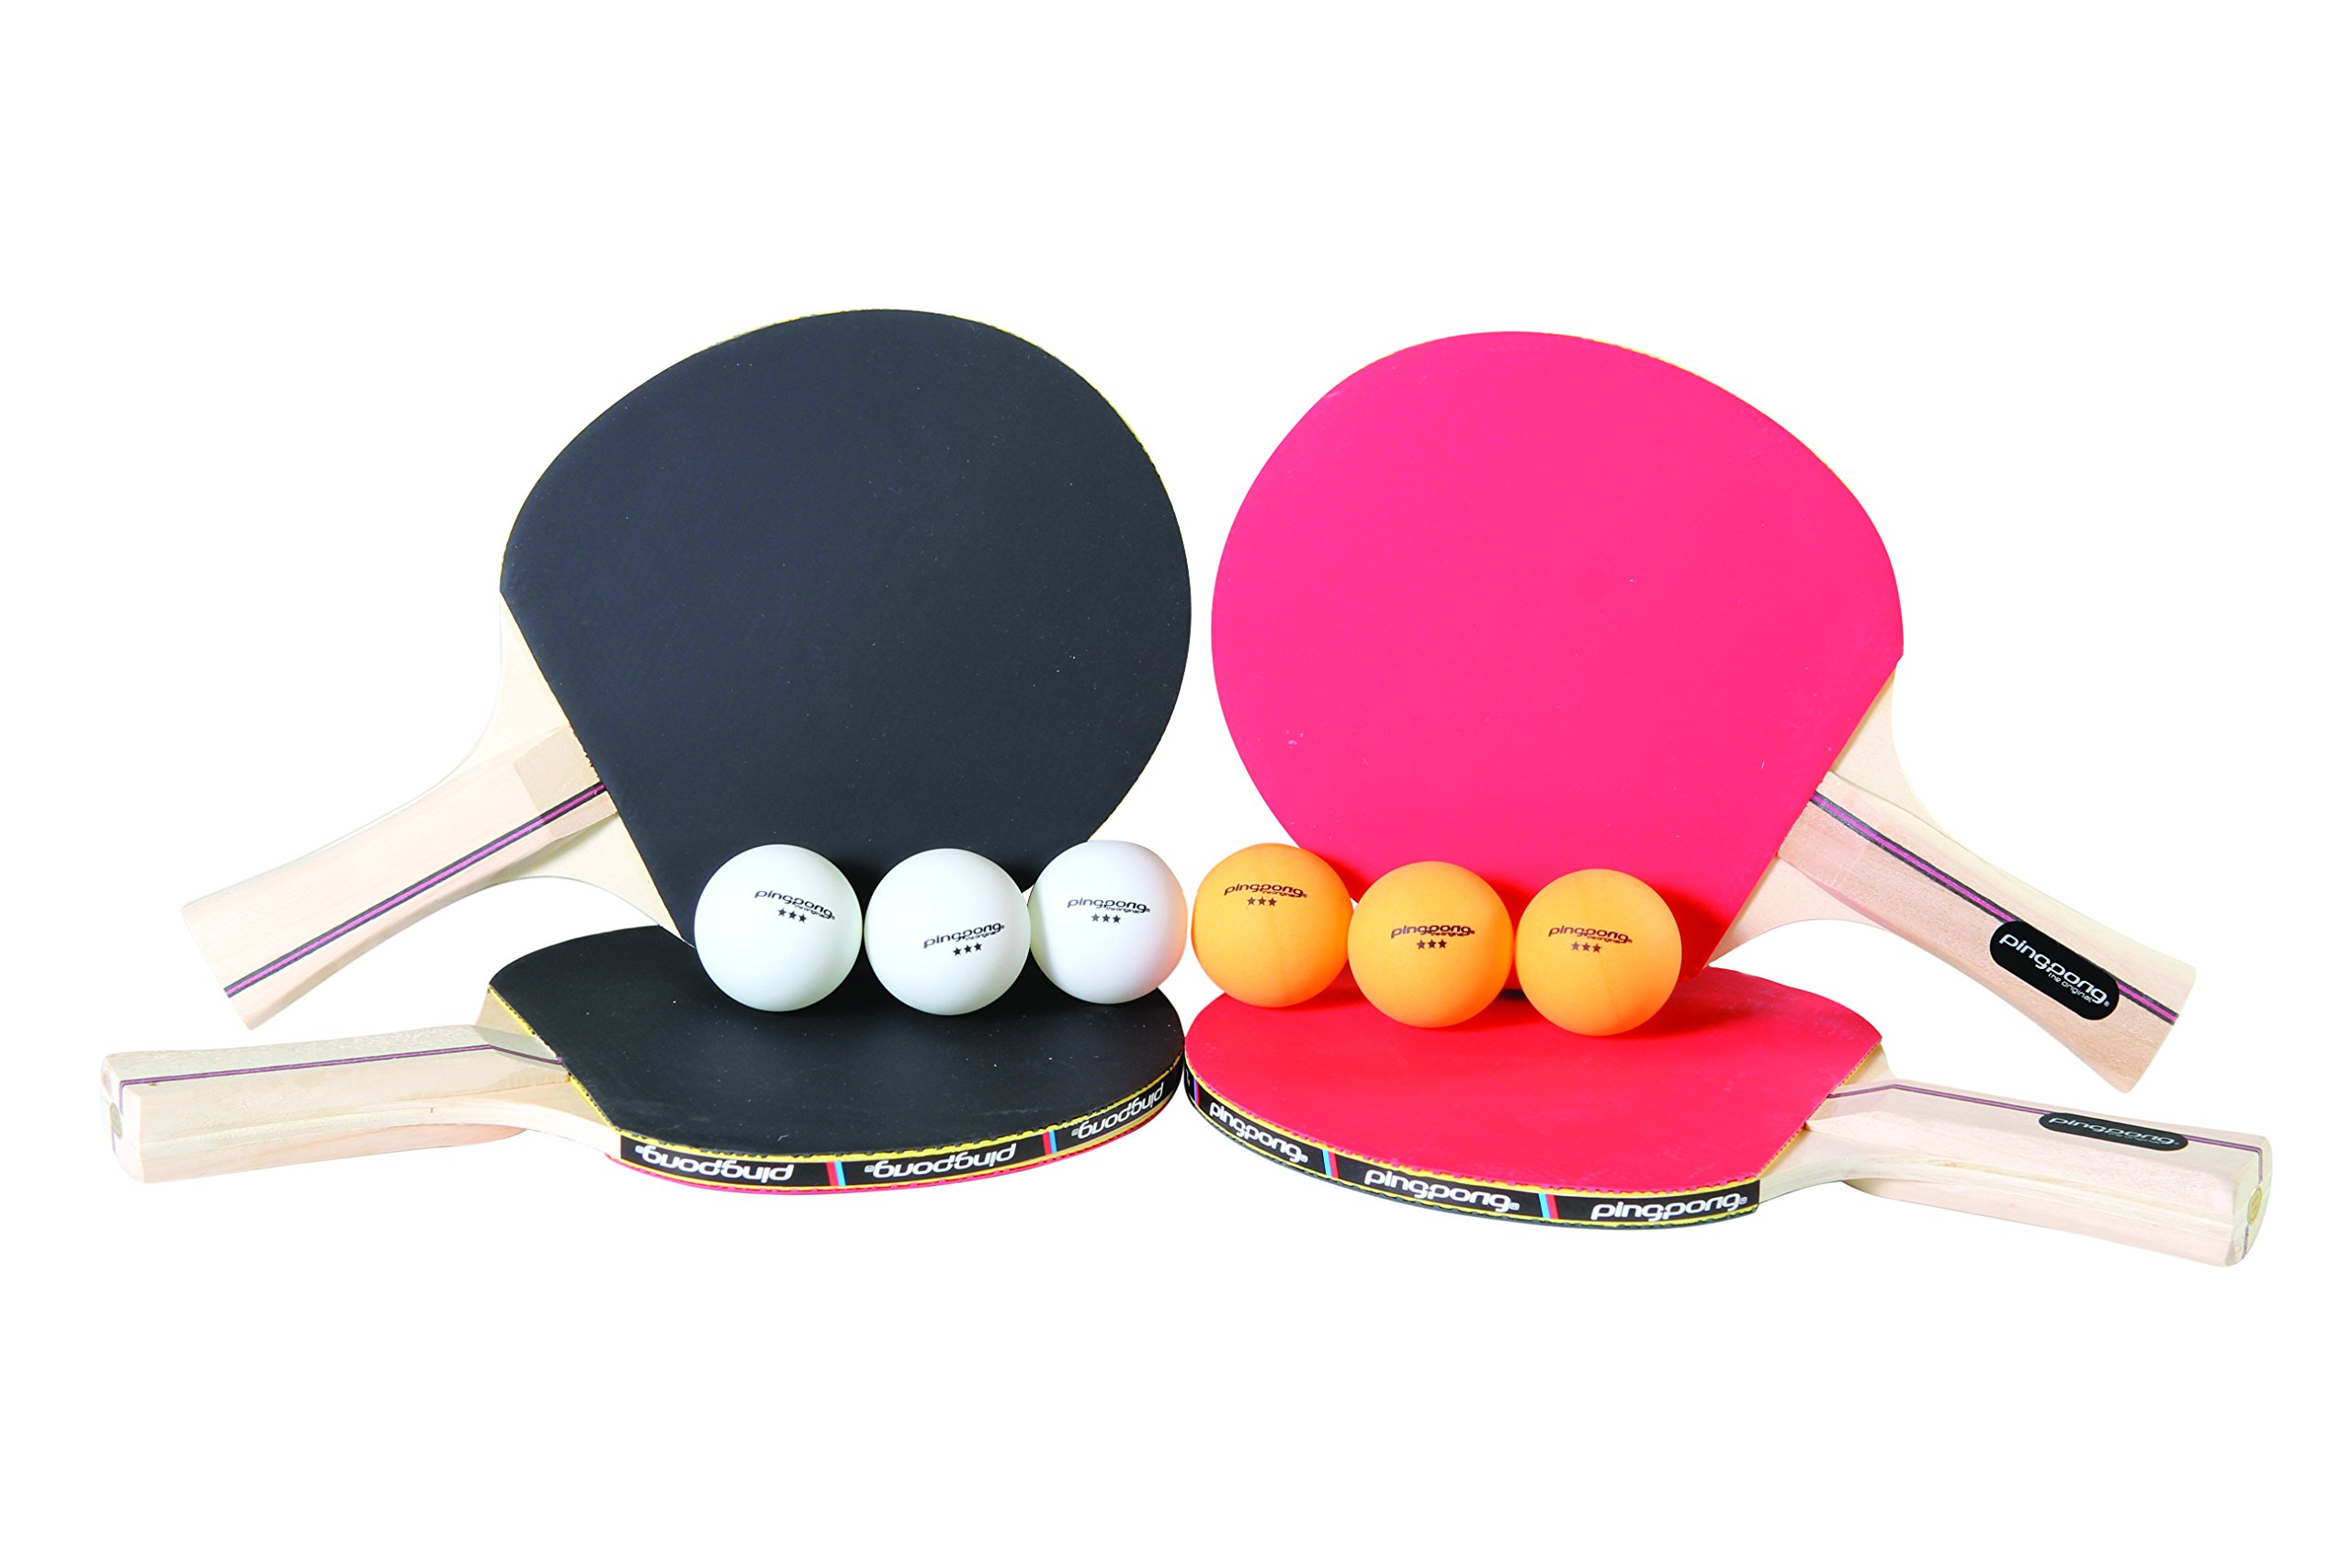 Ping Pong Performance Four Player Table Tennis Set